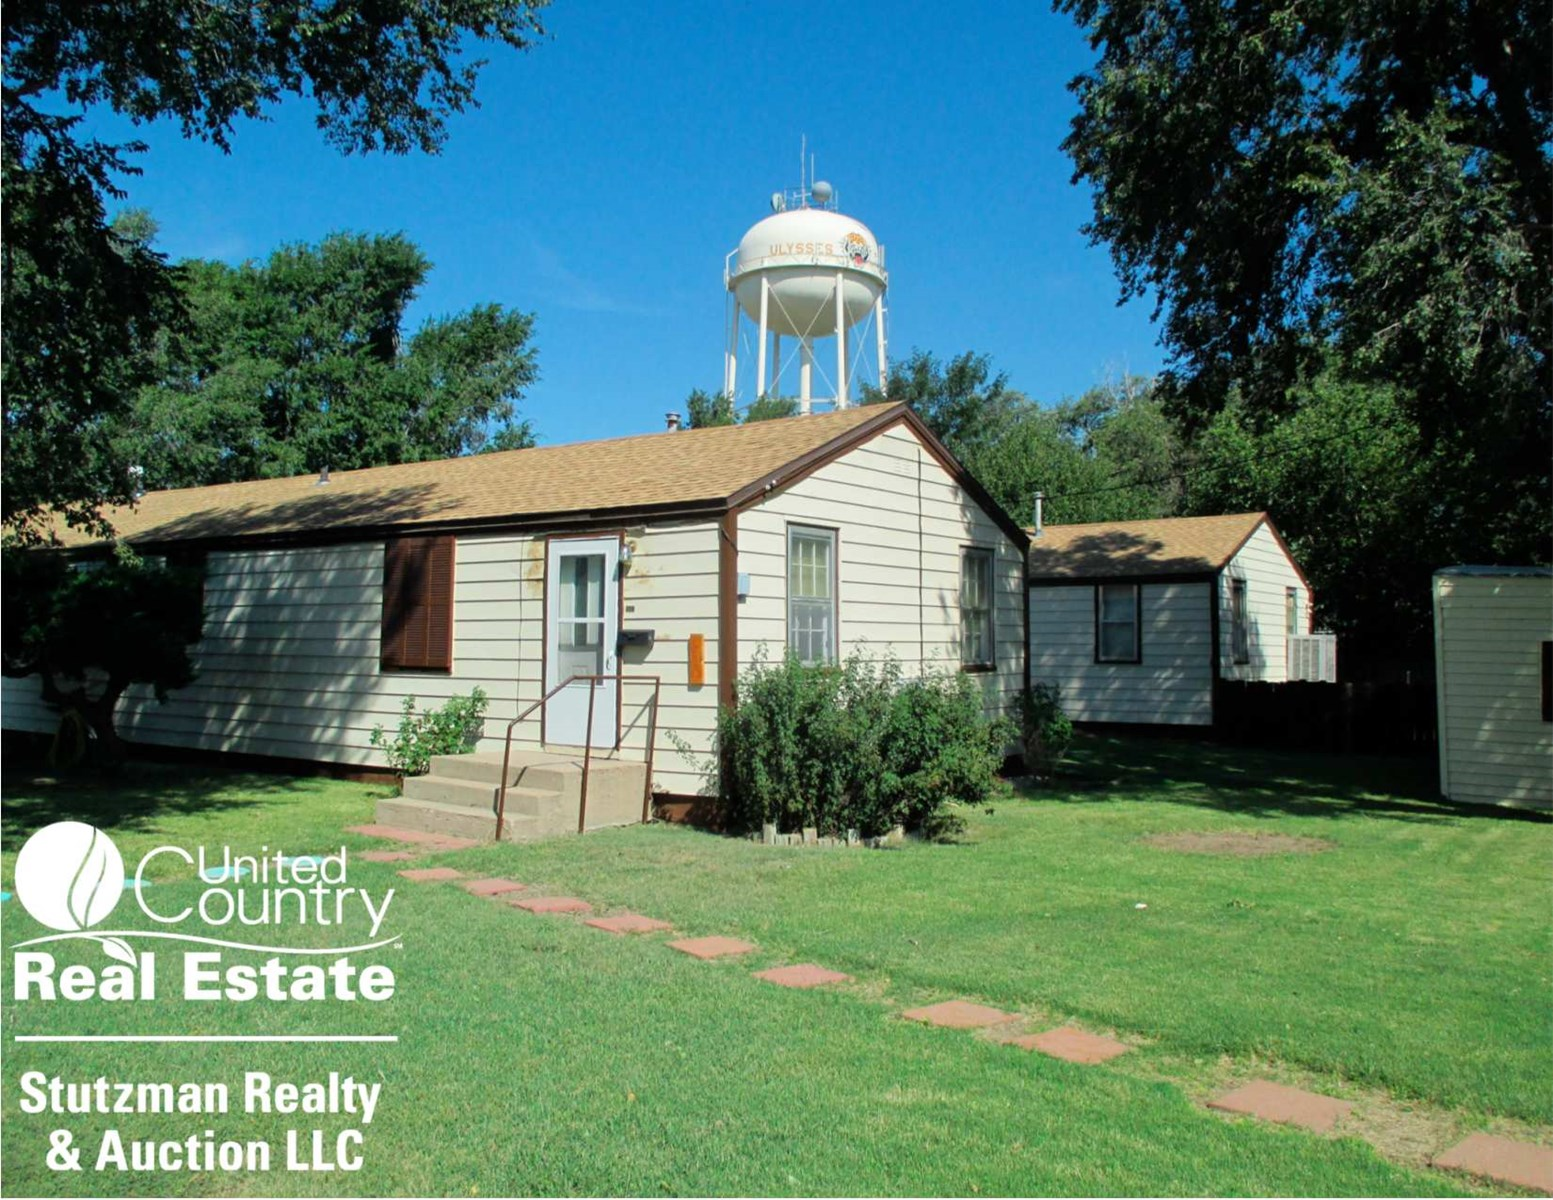 INCOME PRODUCING PROPERTIES FOR SALE IN ULYSSES, KS